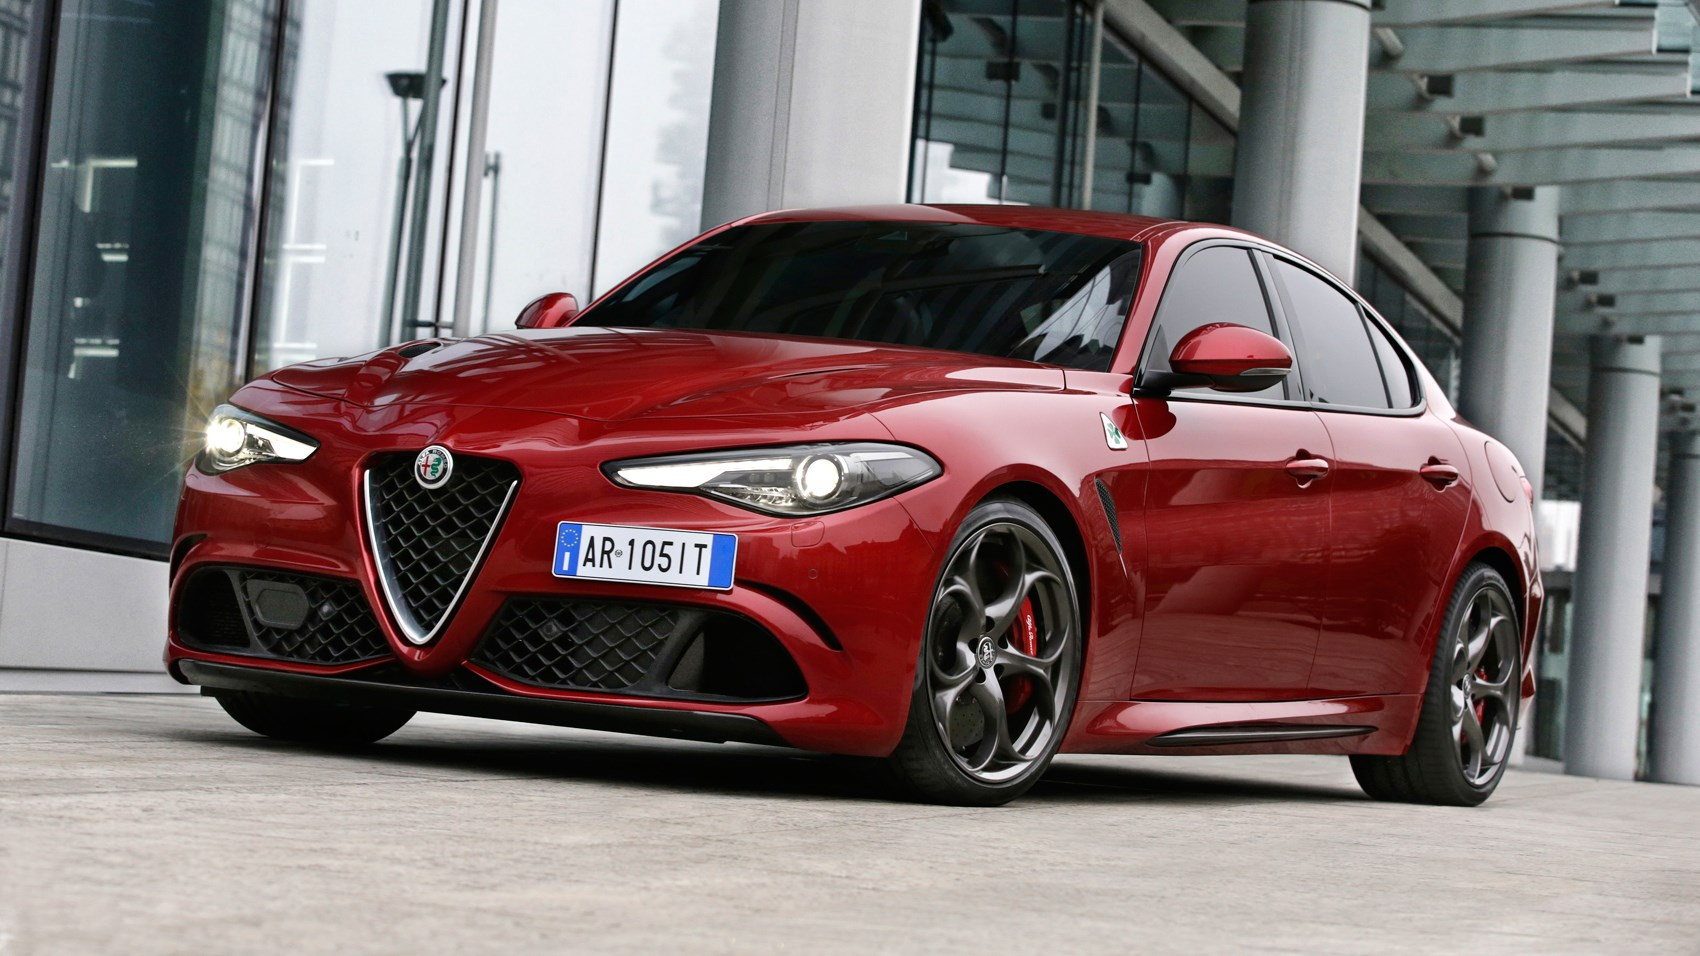 Alfa Romeo Giulia Quadrifoglio Review CAR Magazine - Lease alfa romeo